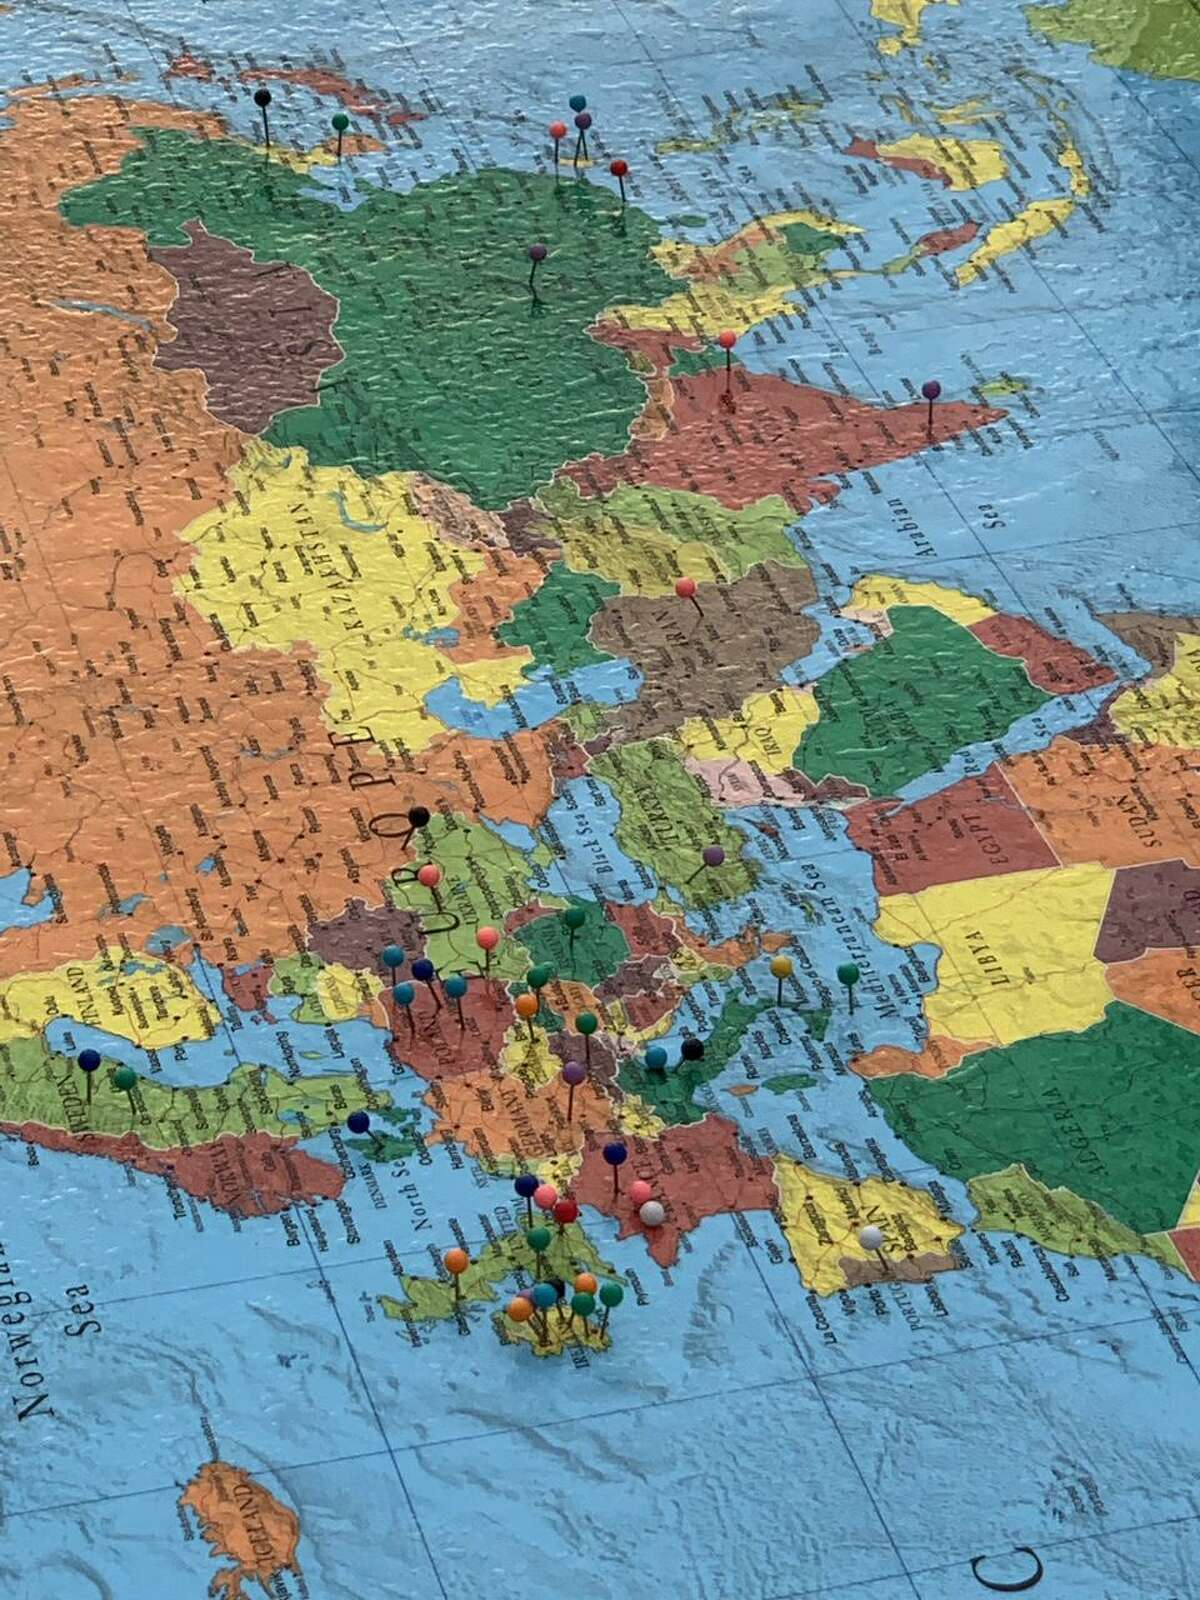 New this year, the Diversity, Equity and Inclusion PTO committee challenged students to think about where their ancestors were from and appreciate the diversity represented within our own student body population. More than 40 countries were represented.